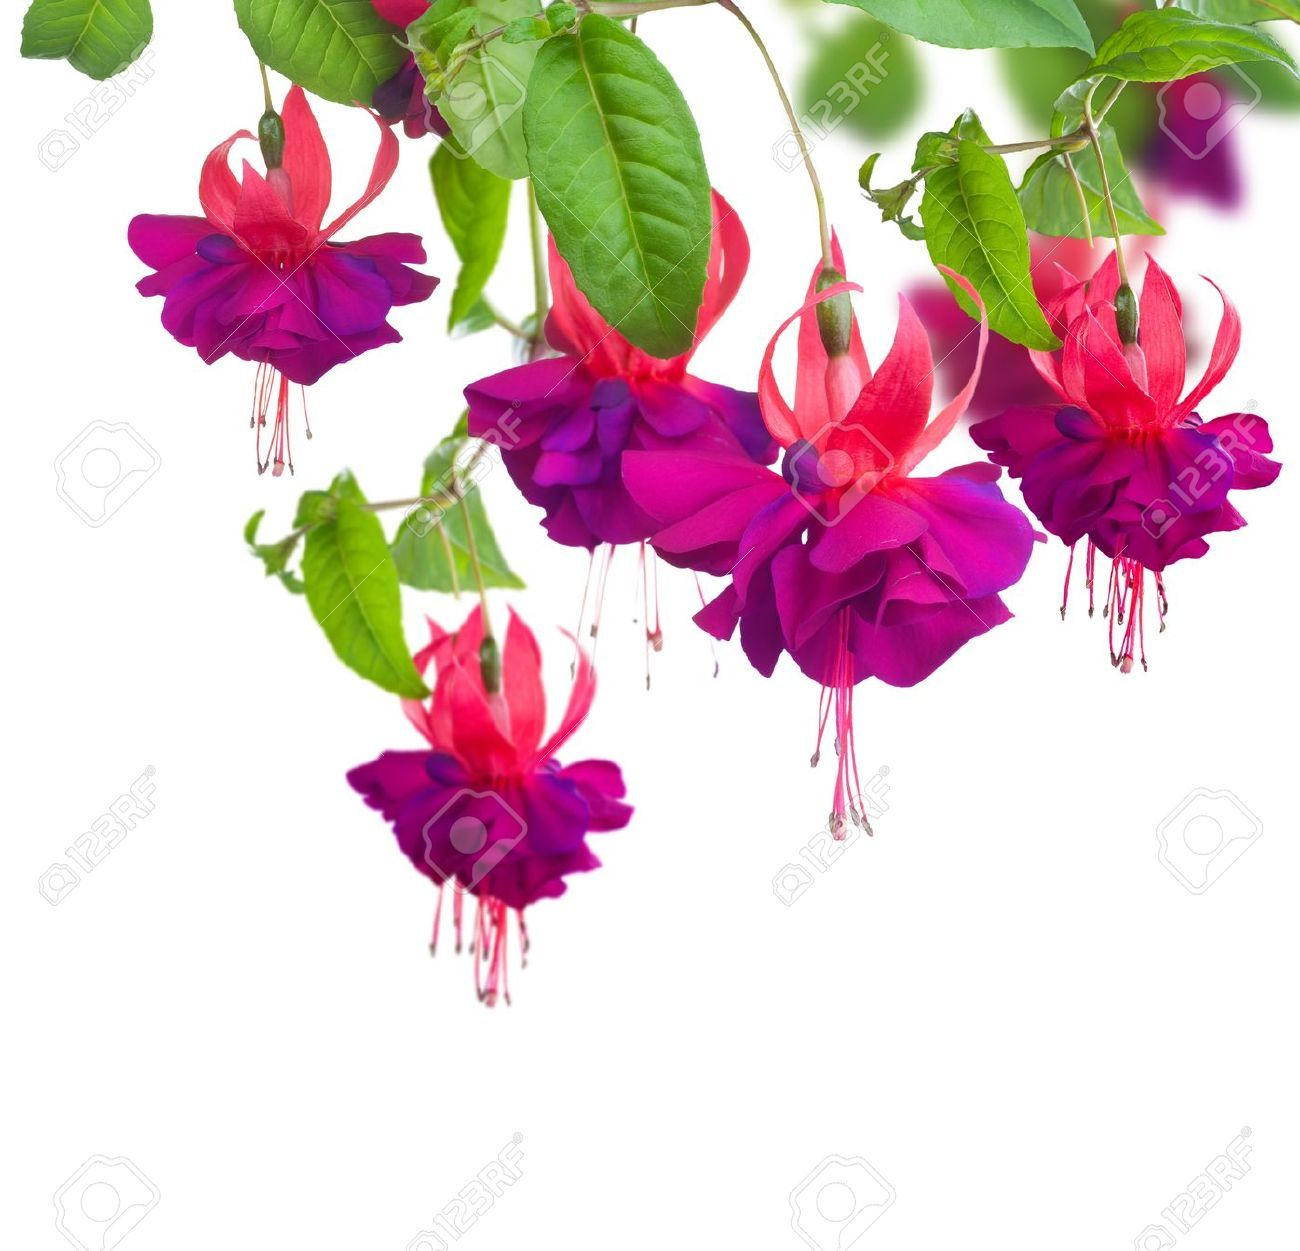 Fuchsia Stock Photos Images, Royalty Free Fuchsia Images And.